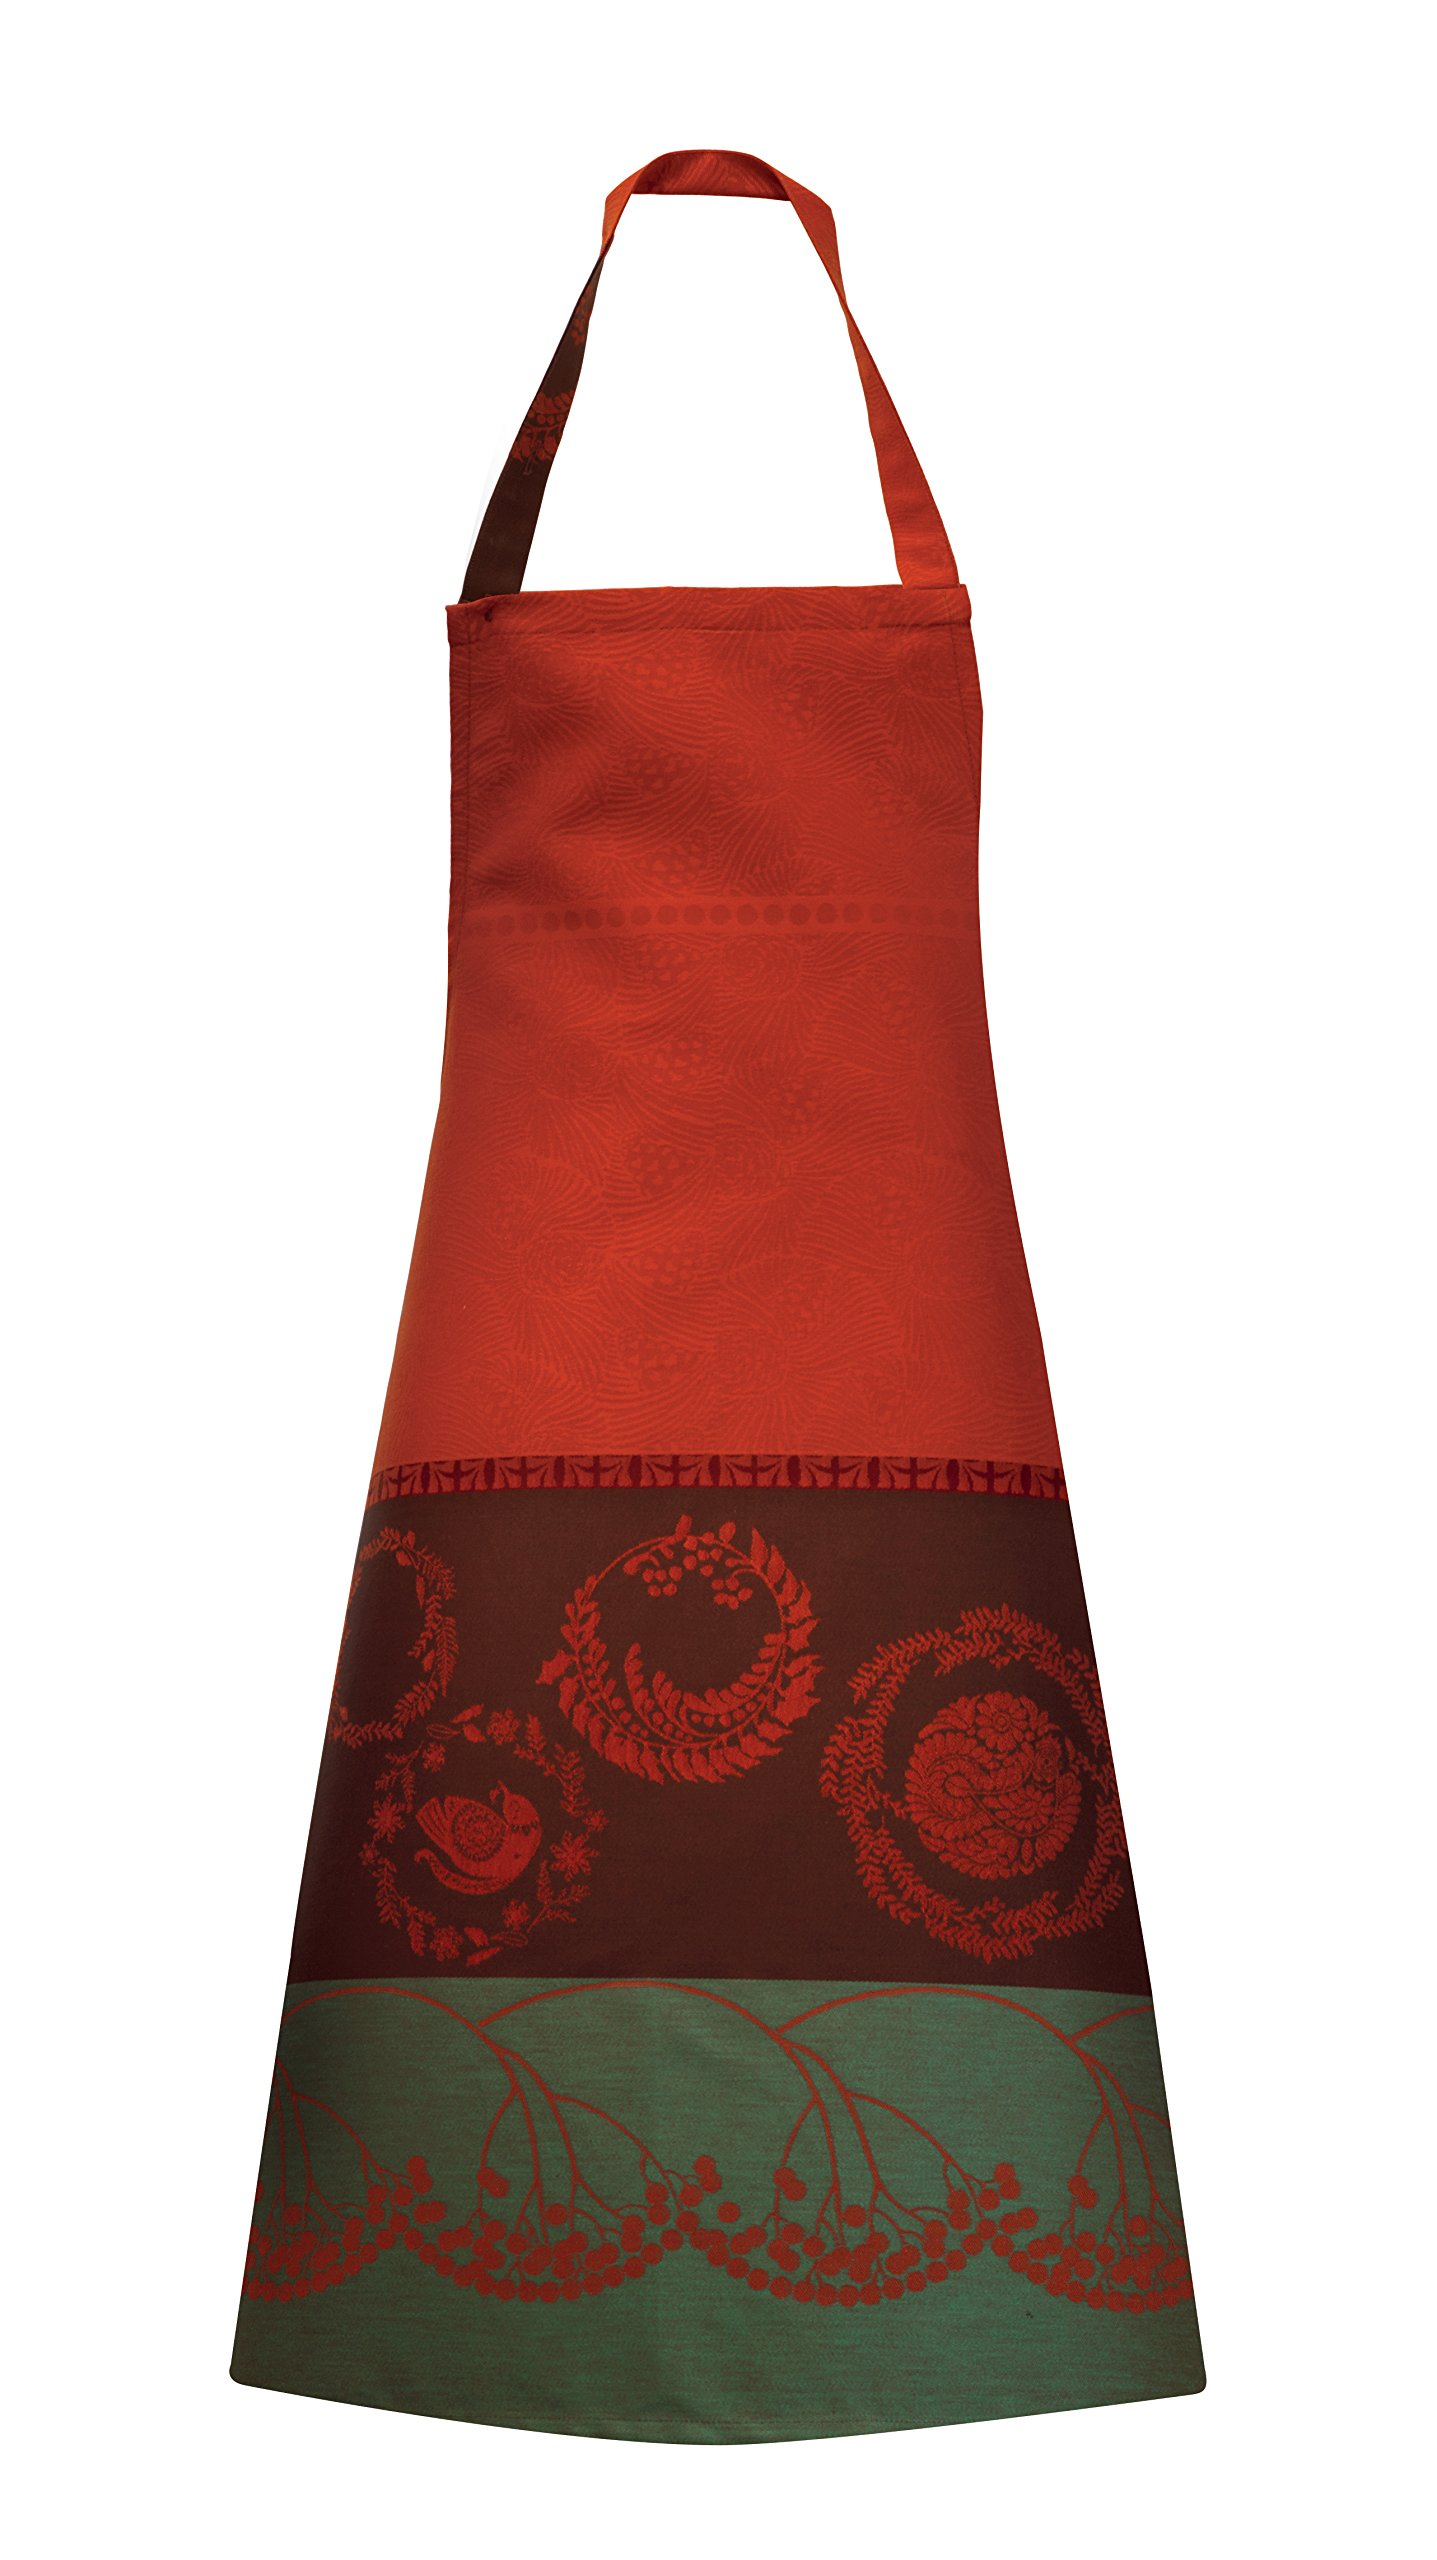 Garnier-Thiebaut, Christmas Forest Red French Holiday Full Bib Apron, 100 Percent Cotton, Green Sweet Treated by Garnier-Thiebaut